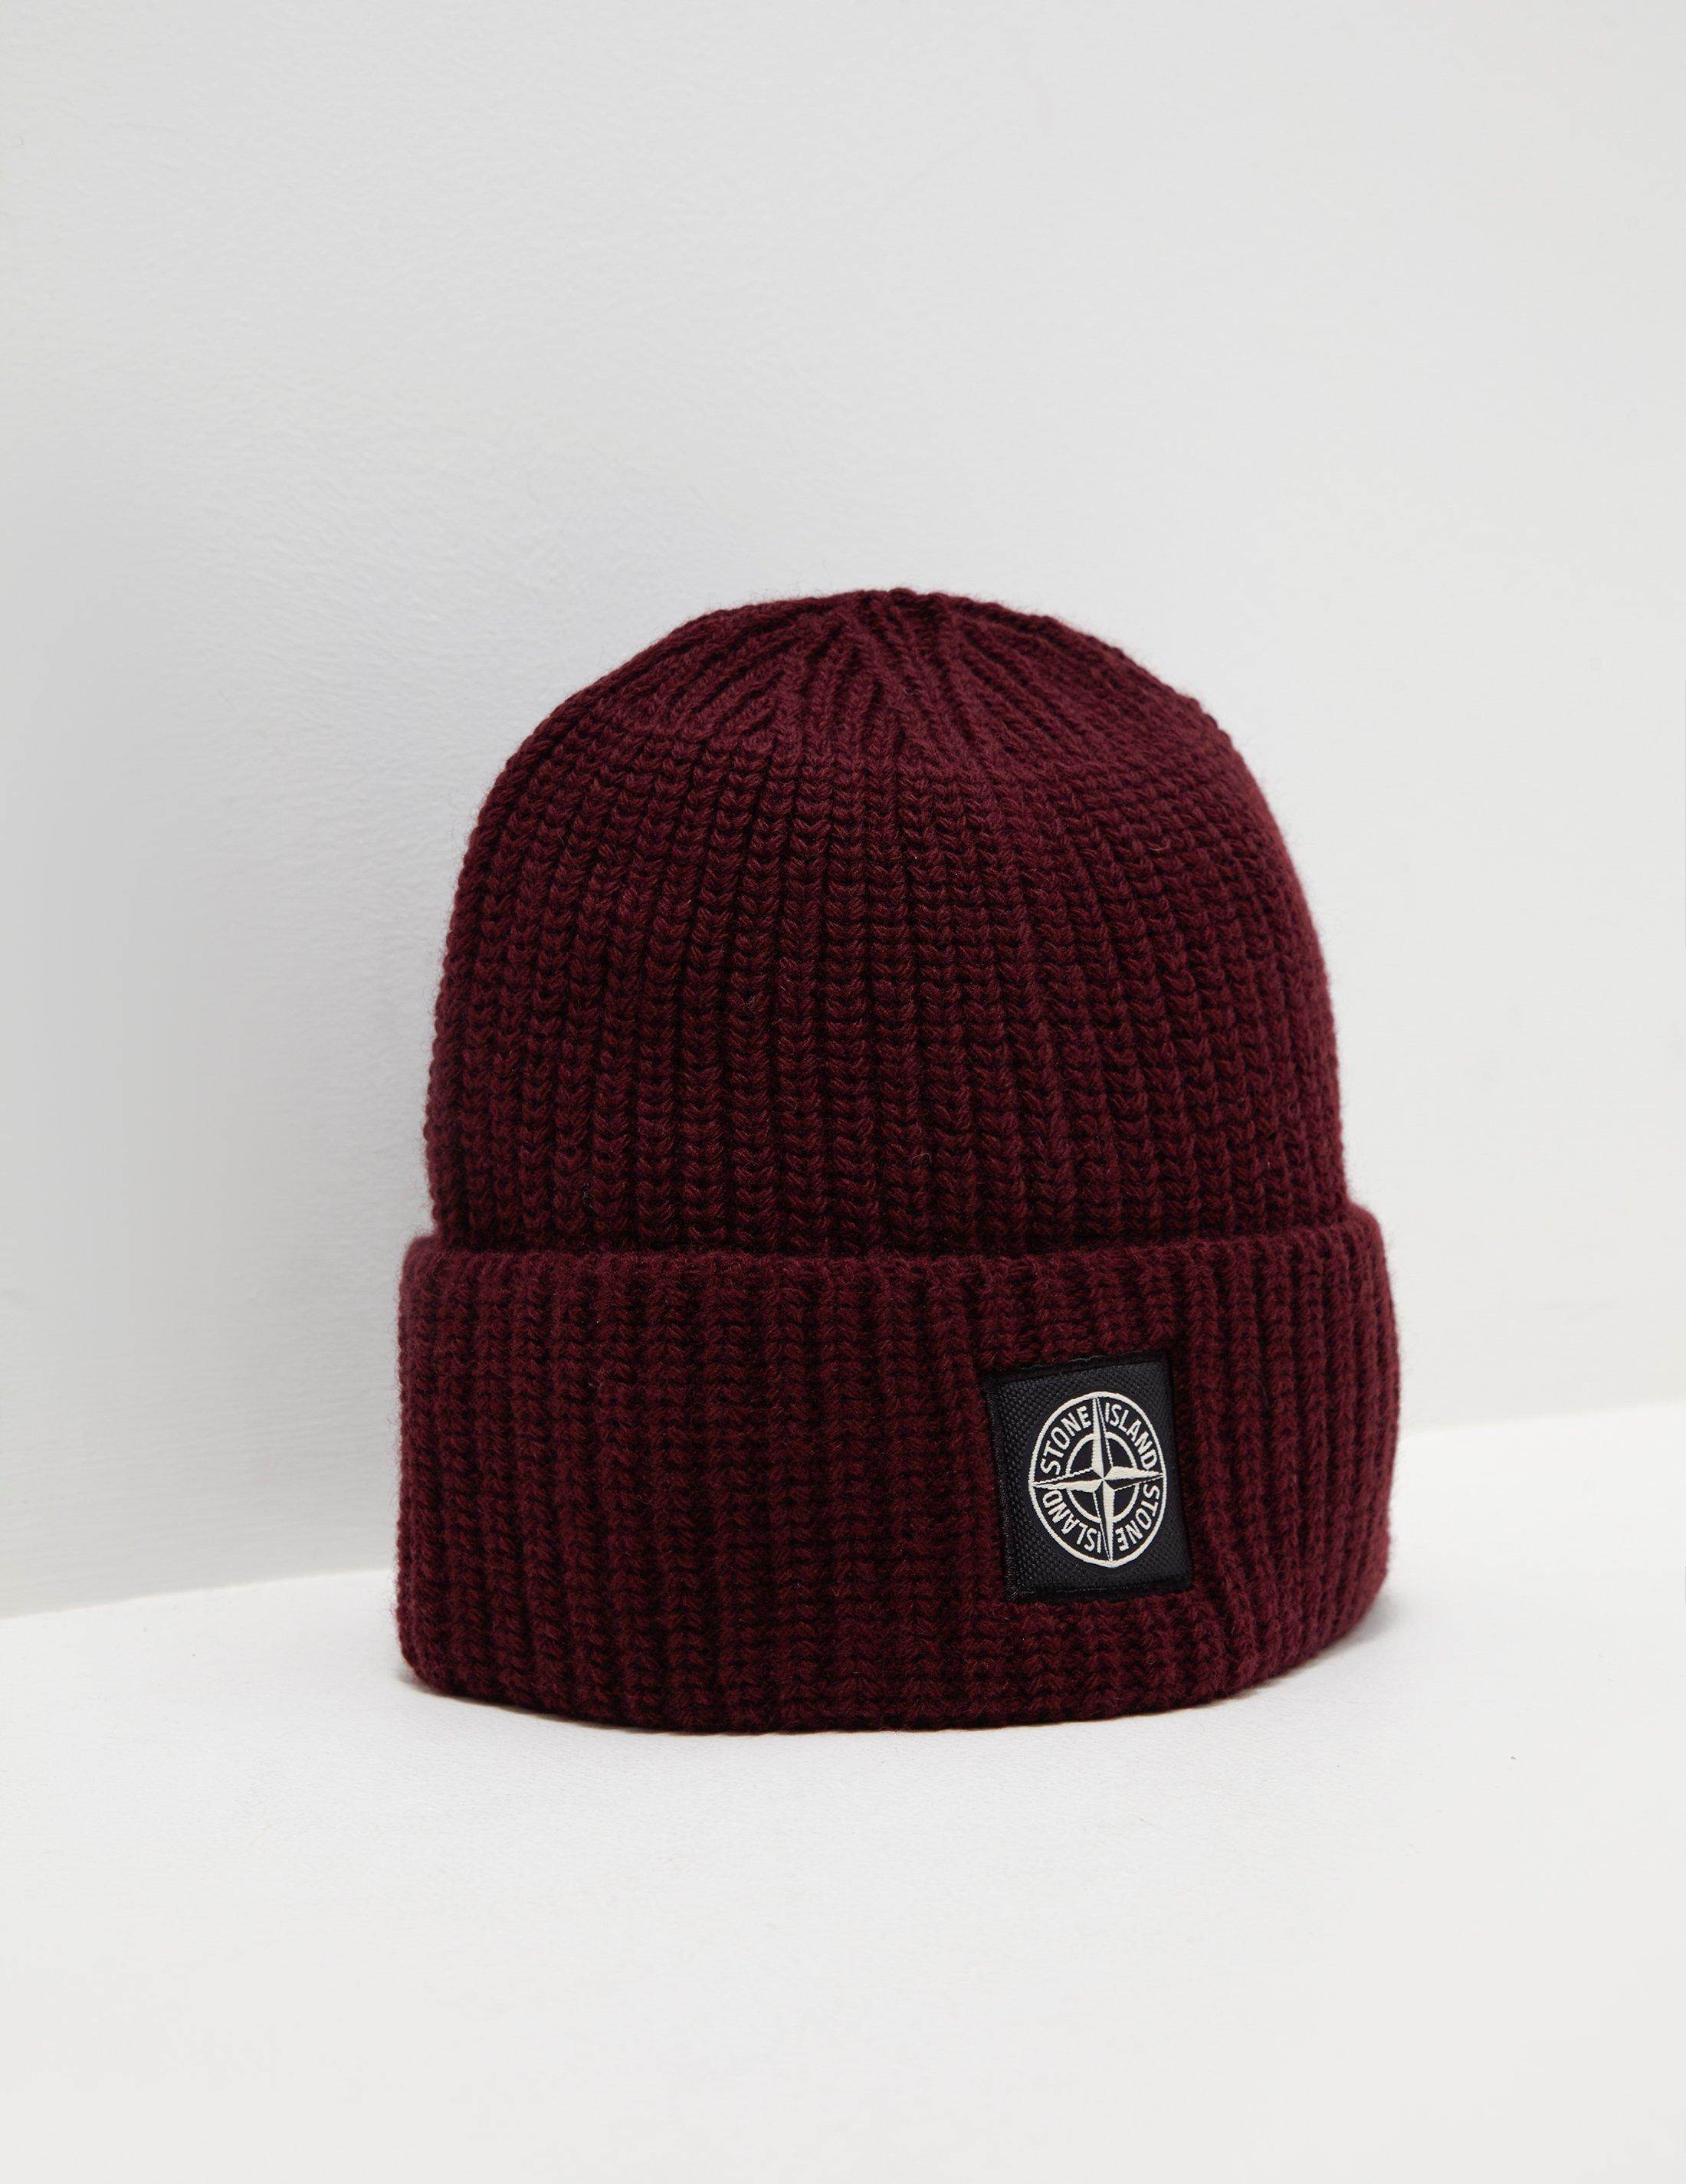 5707e45c510 ... Stone Island. Mens Patch Beanie Red hot sale online 54e99 d946c   Moncler Red Knit ...